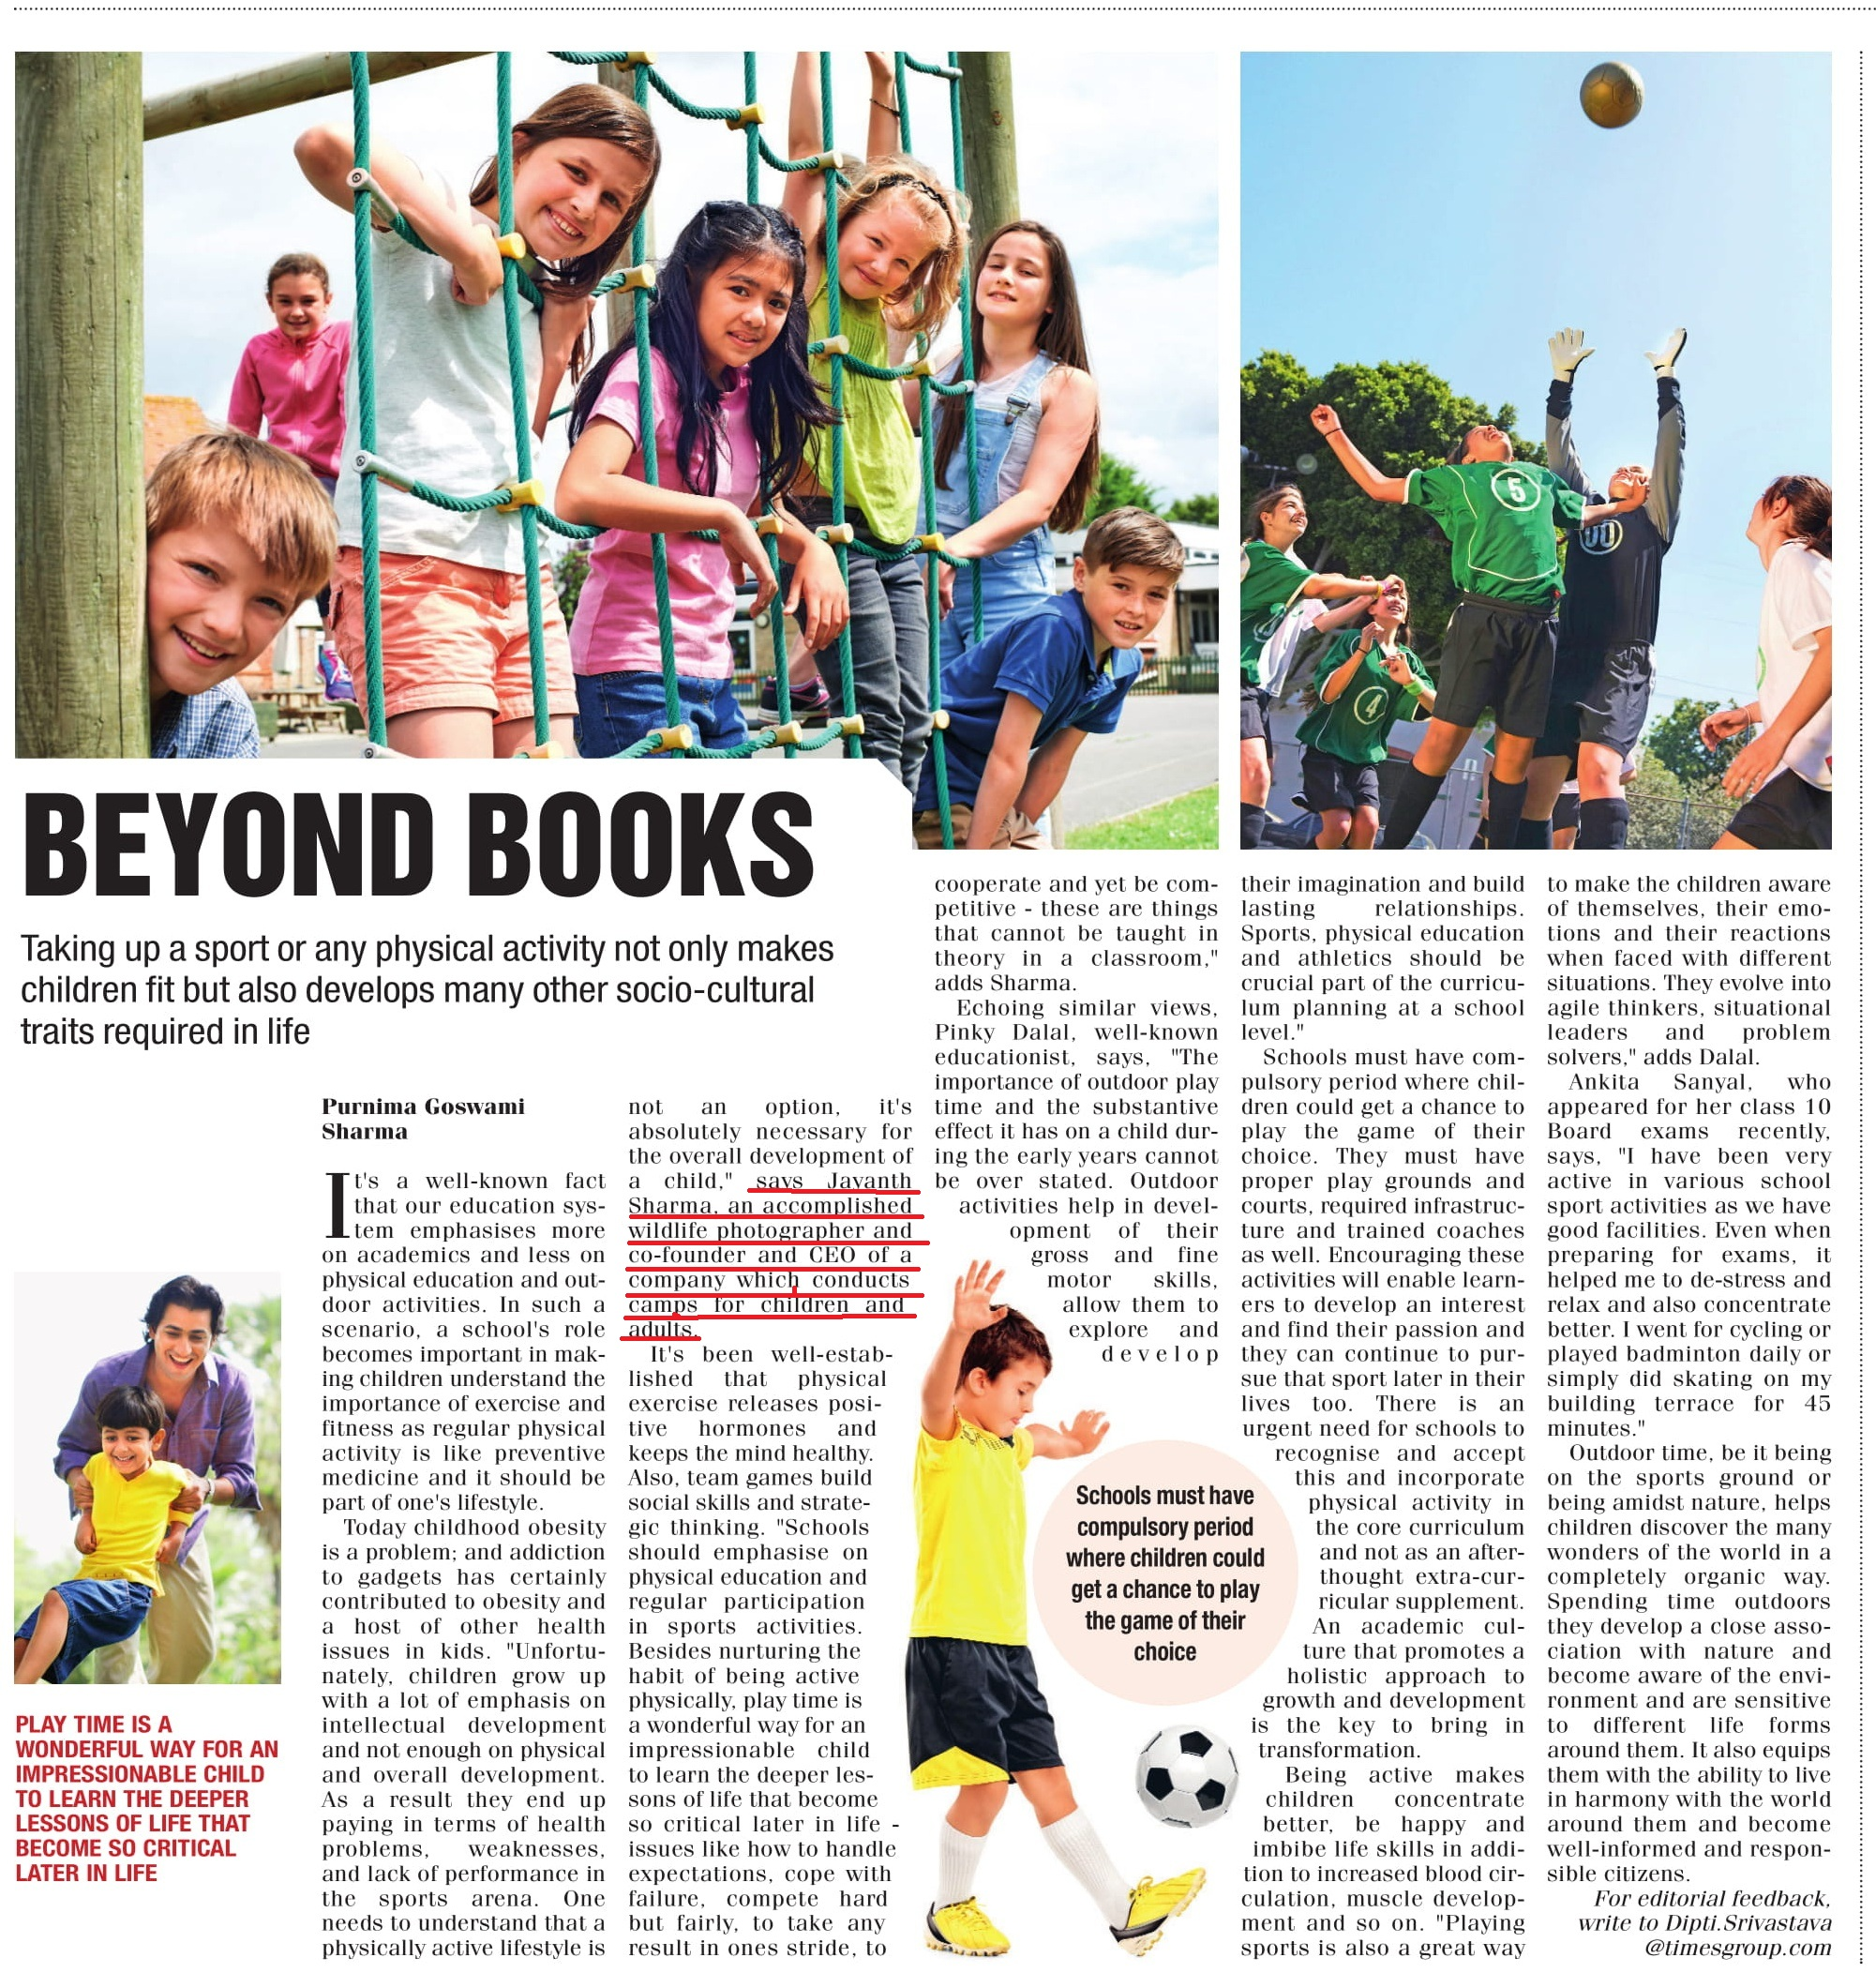 Beyond Books Times Of India Importance Of Physical Activity For Kids